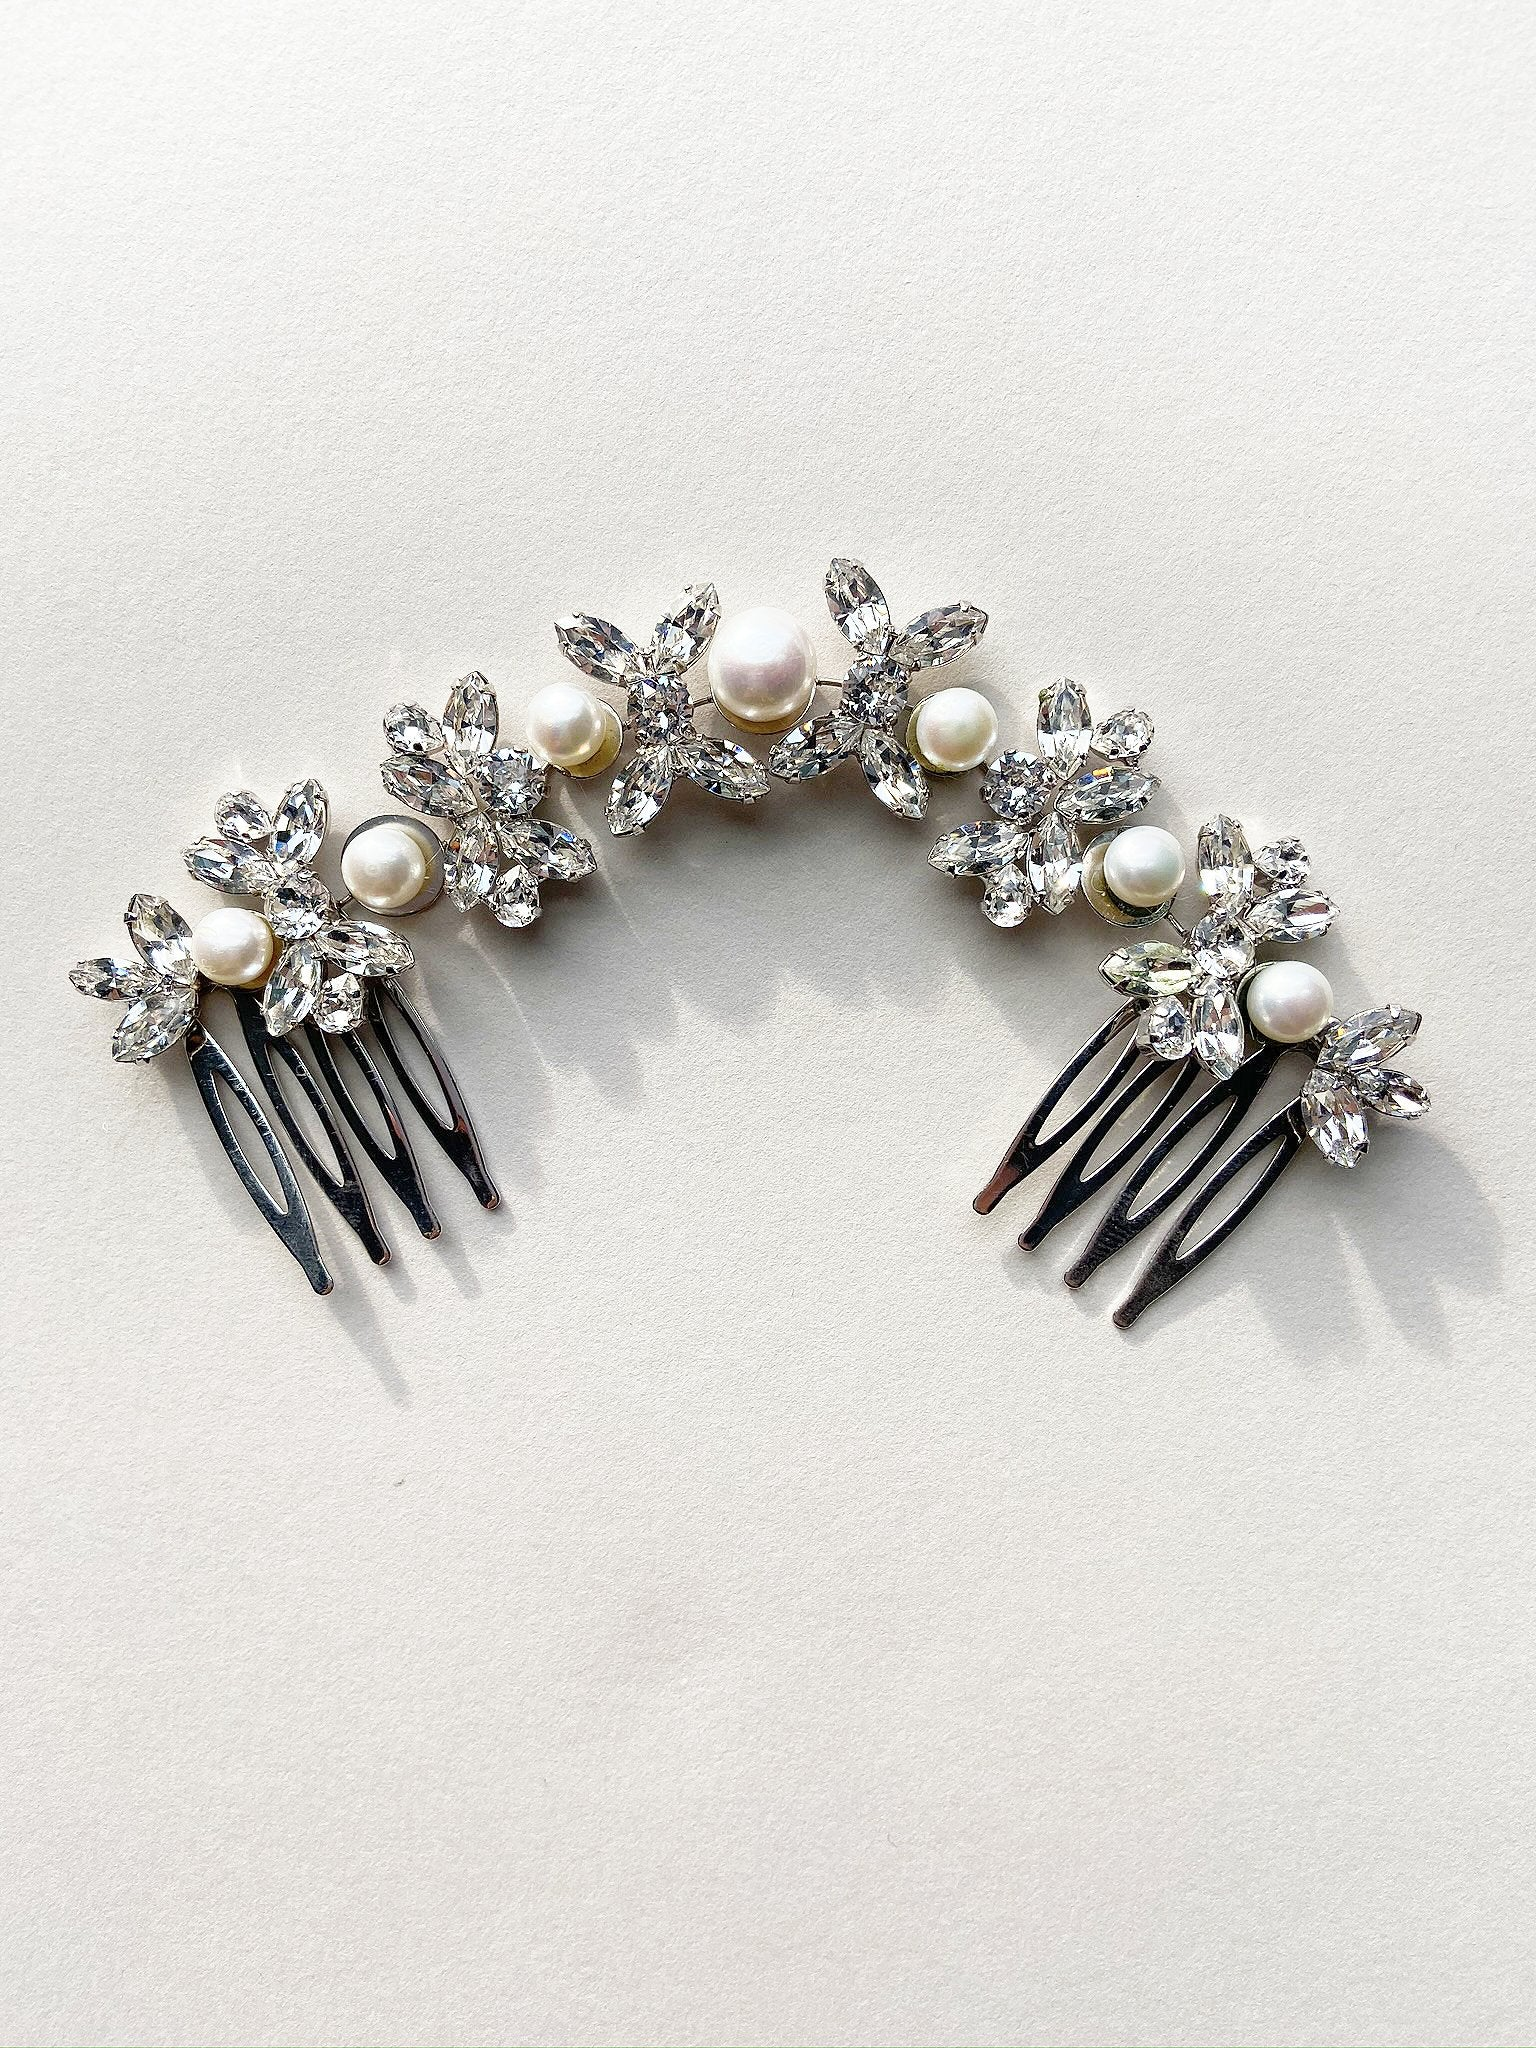 Rent Bridal Hair Accessories - Bardot Comb - Happily Ever Borrowed